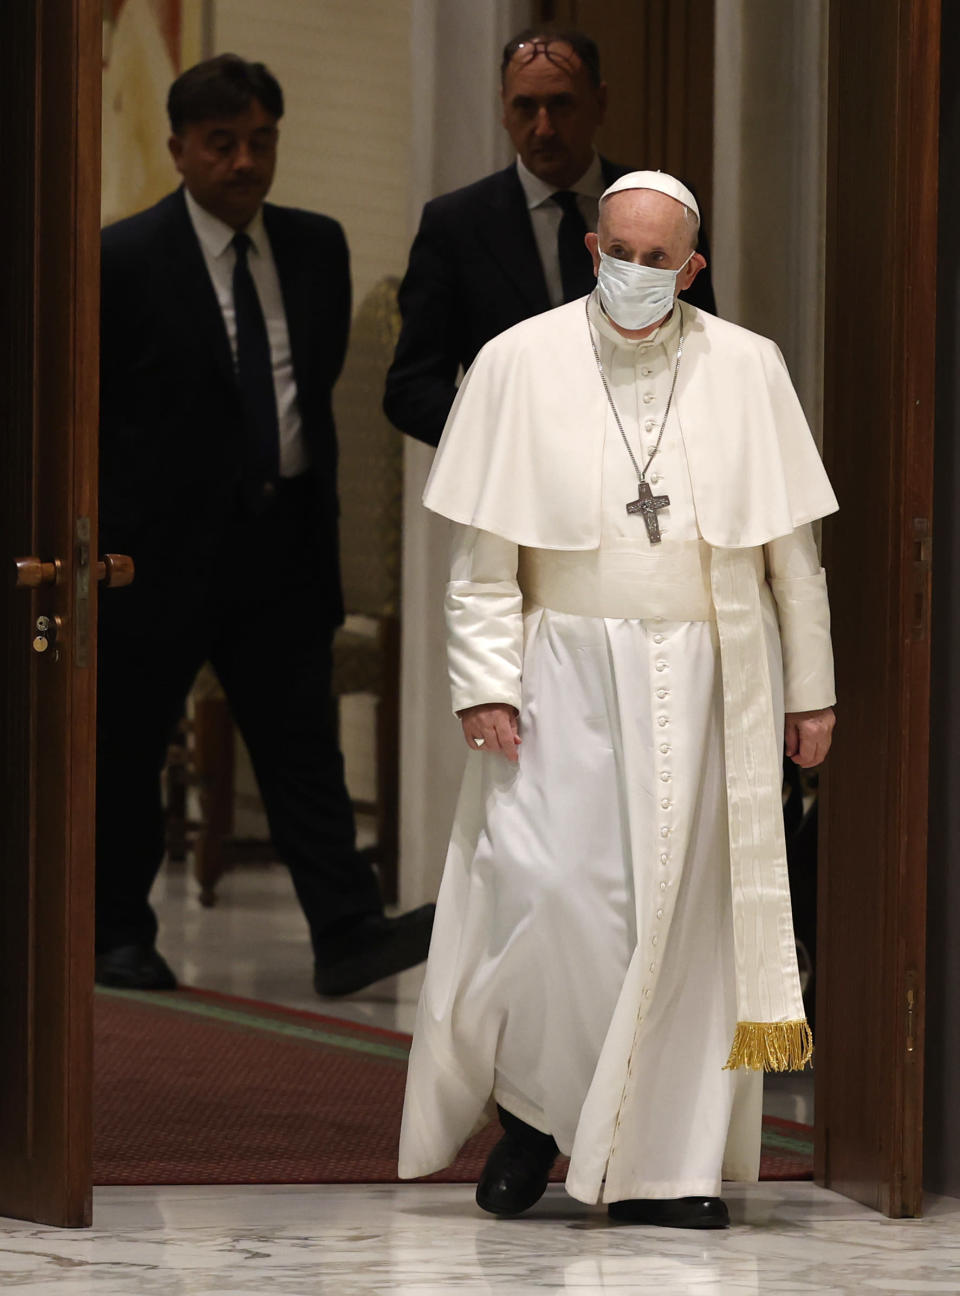 Pope Francis arrives to attend his weekly general audience in the Paul VI hall at the Vatican, Wednesday, Aug. 4, 2021. It was Francis' first general audience since undergoing planned surgery to remove half his colon for a severe narrowing of his large intestine on July 4, his first major surgery since he became pope in 2013. (AP Photo/Riccardo De Luca)